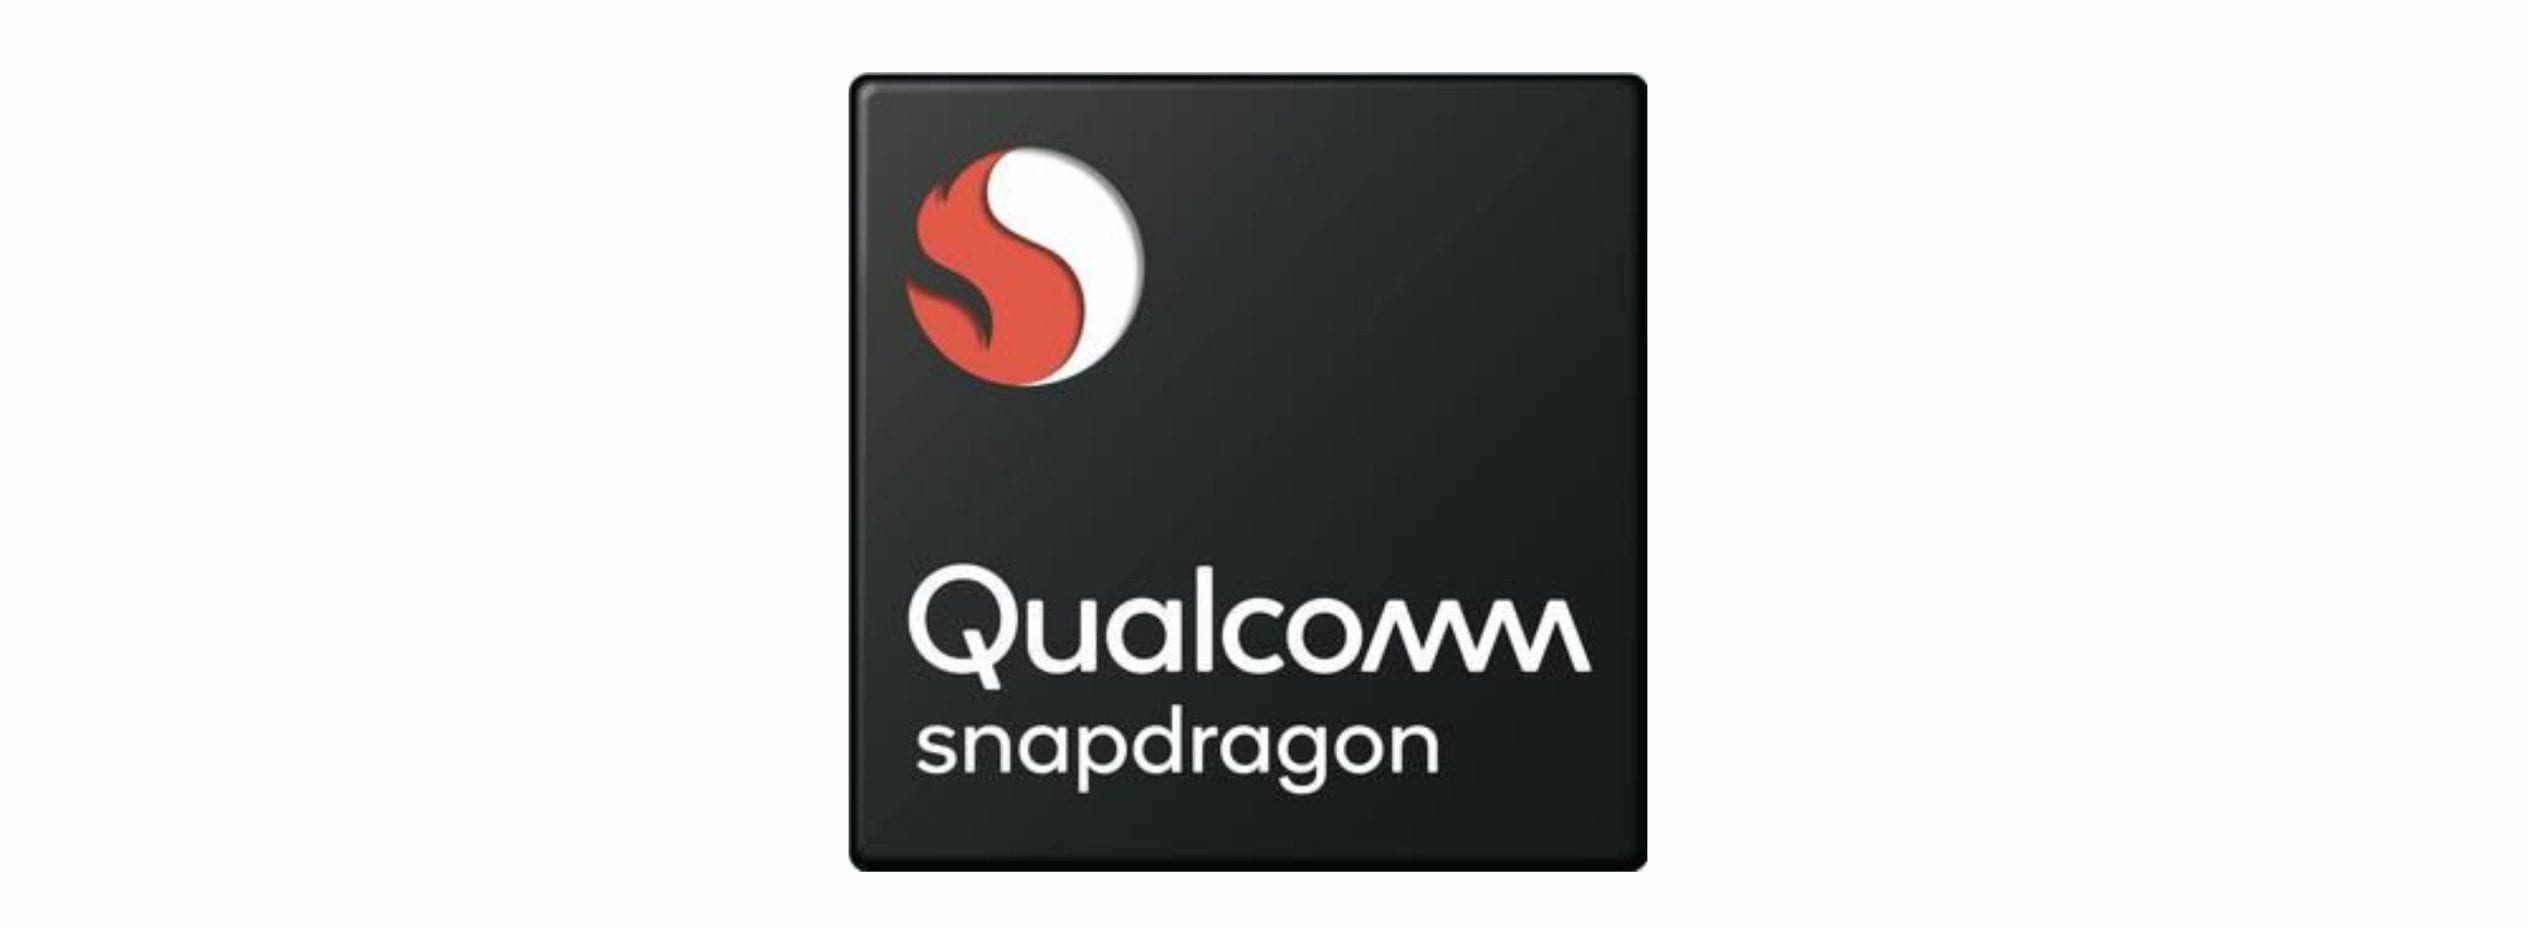 Qualcomm Is Ready To Rival Apple's M1 Chips With Its Own Laptop Chips